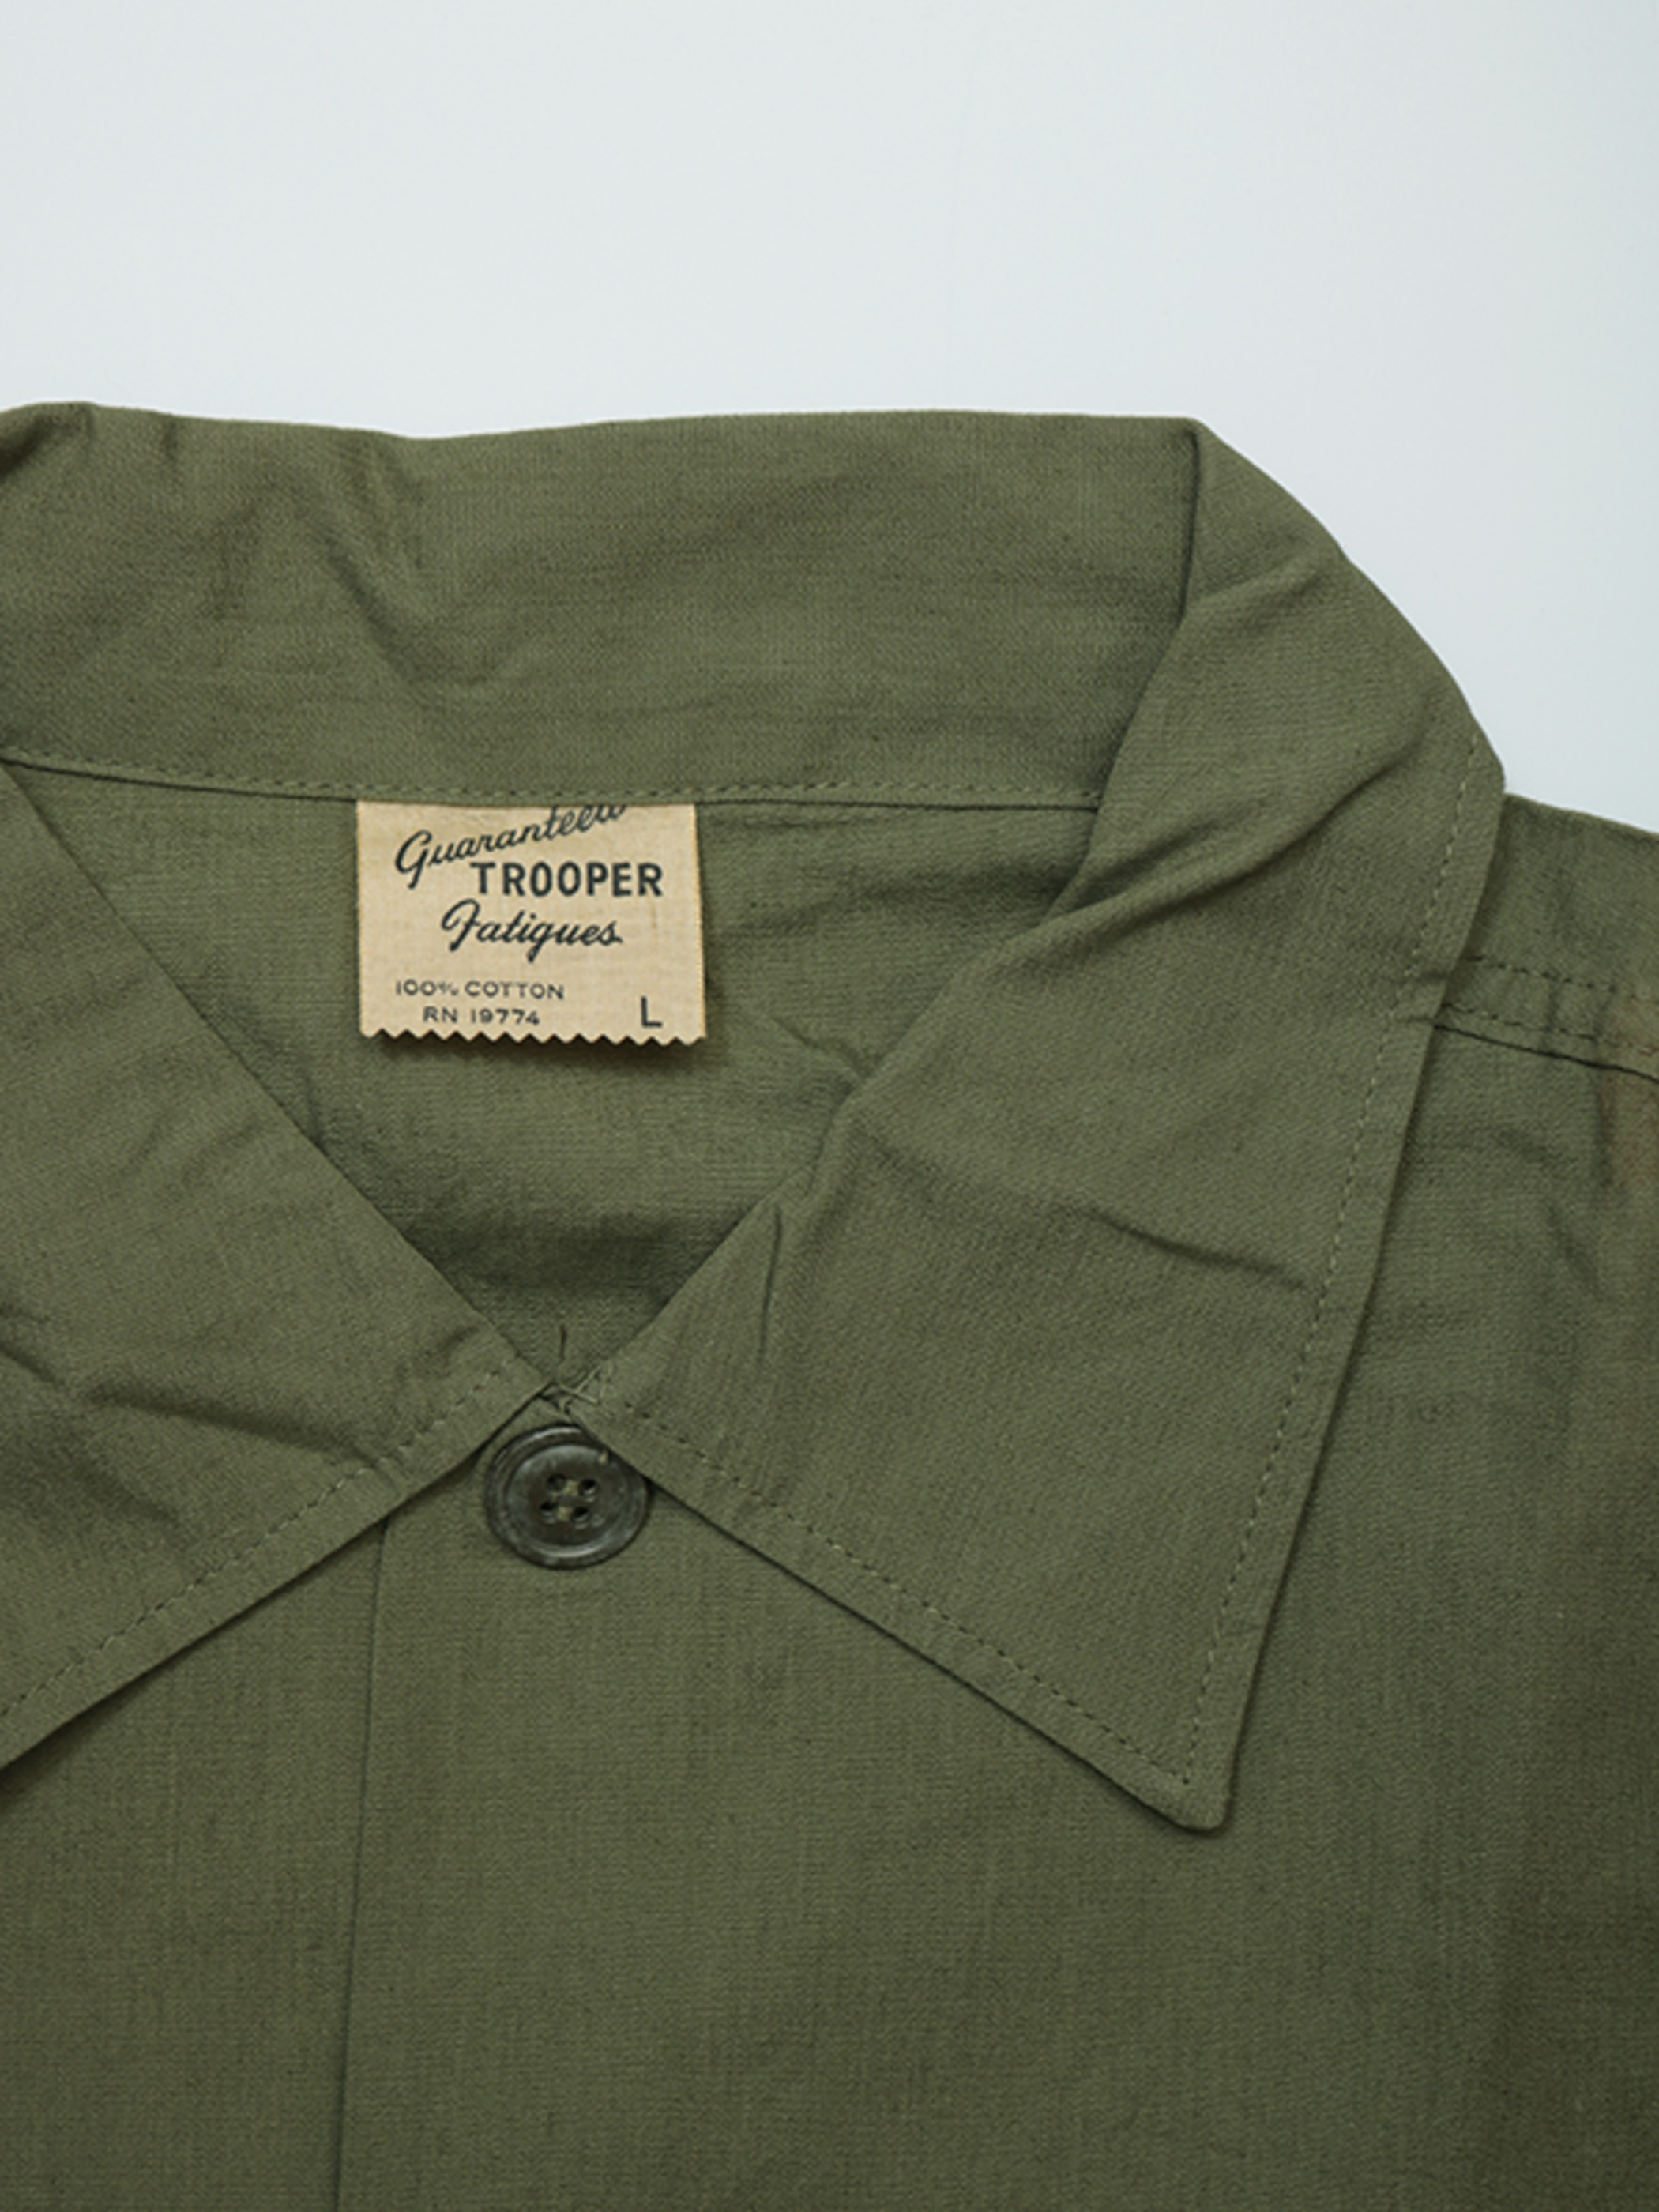 Poplin Utility Shirt / Trooper